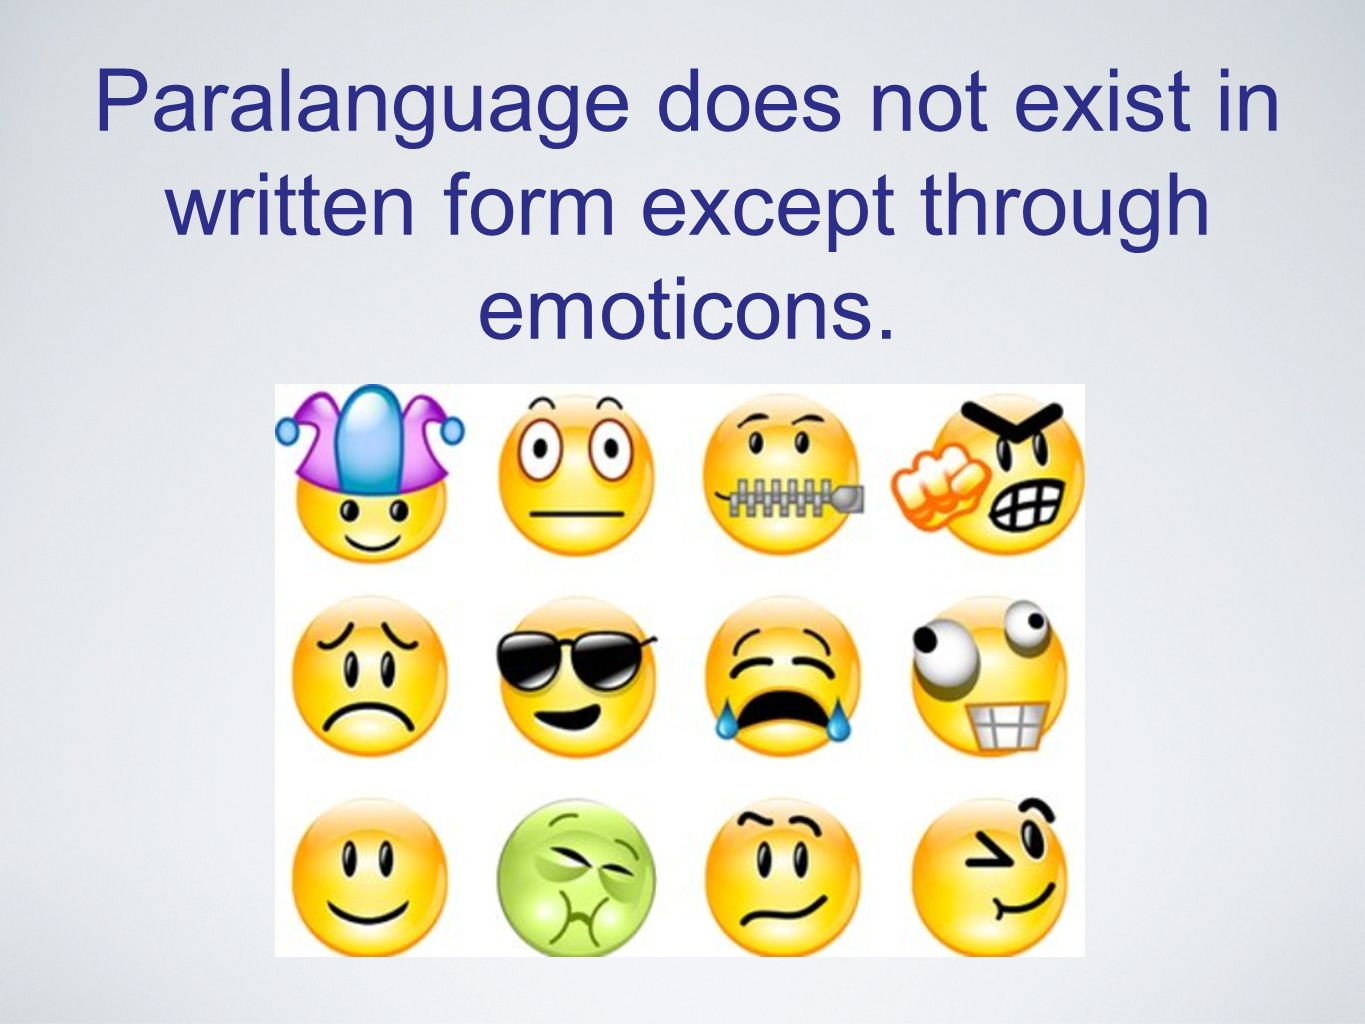 Paralanguage does not exist in written form except through emoticons.